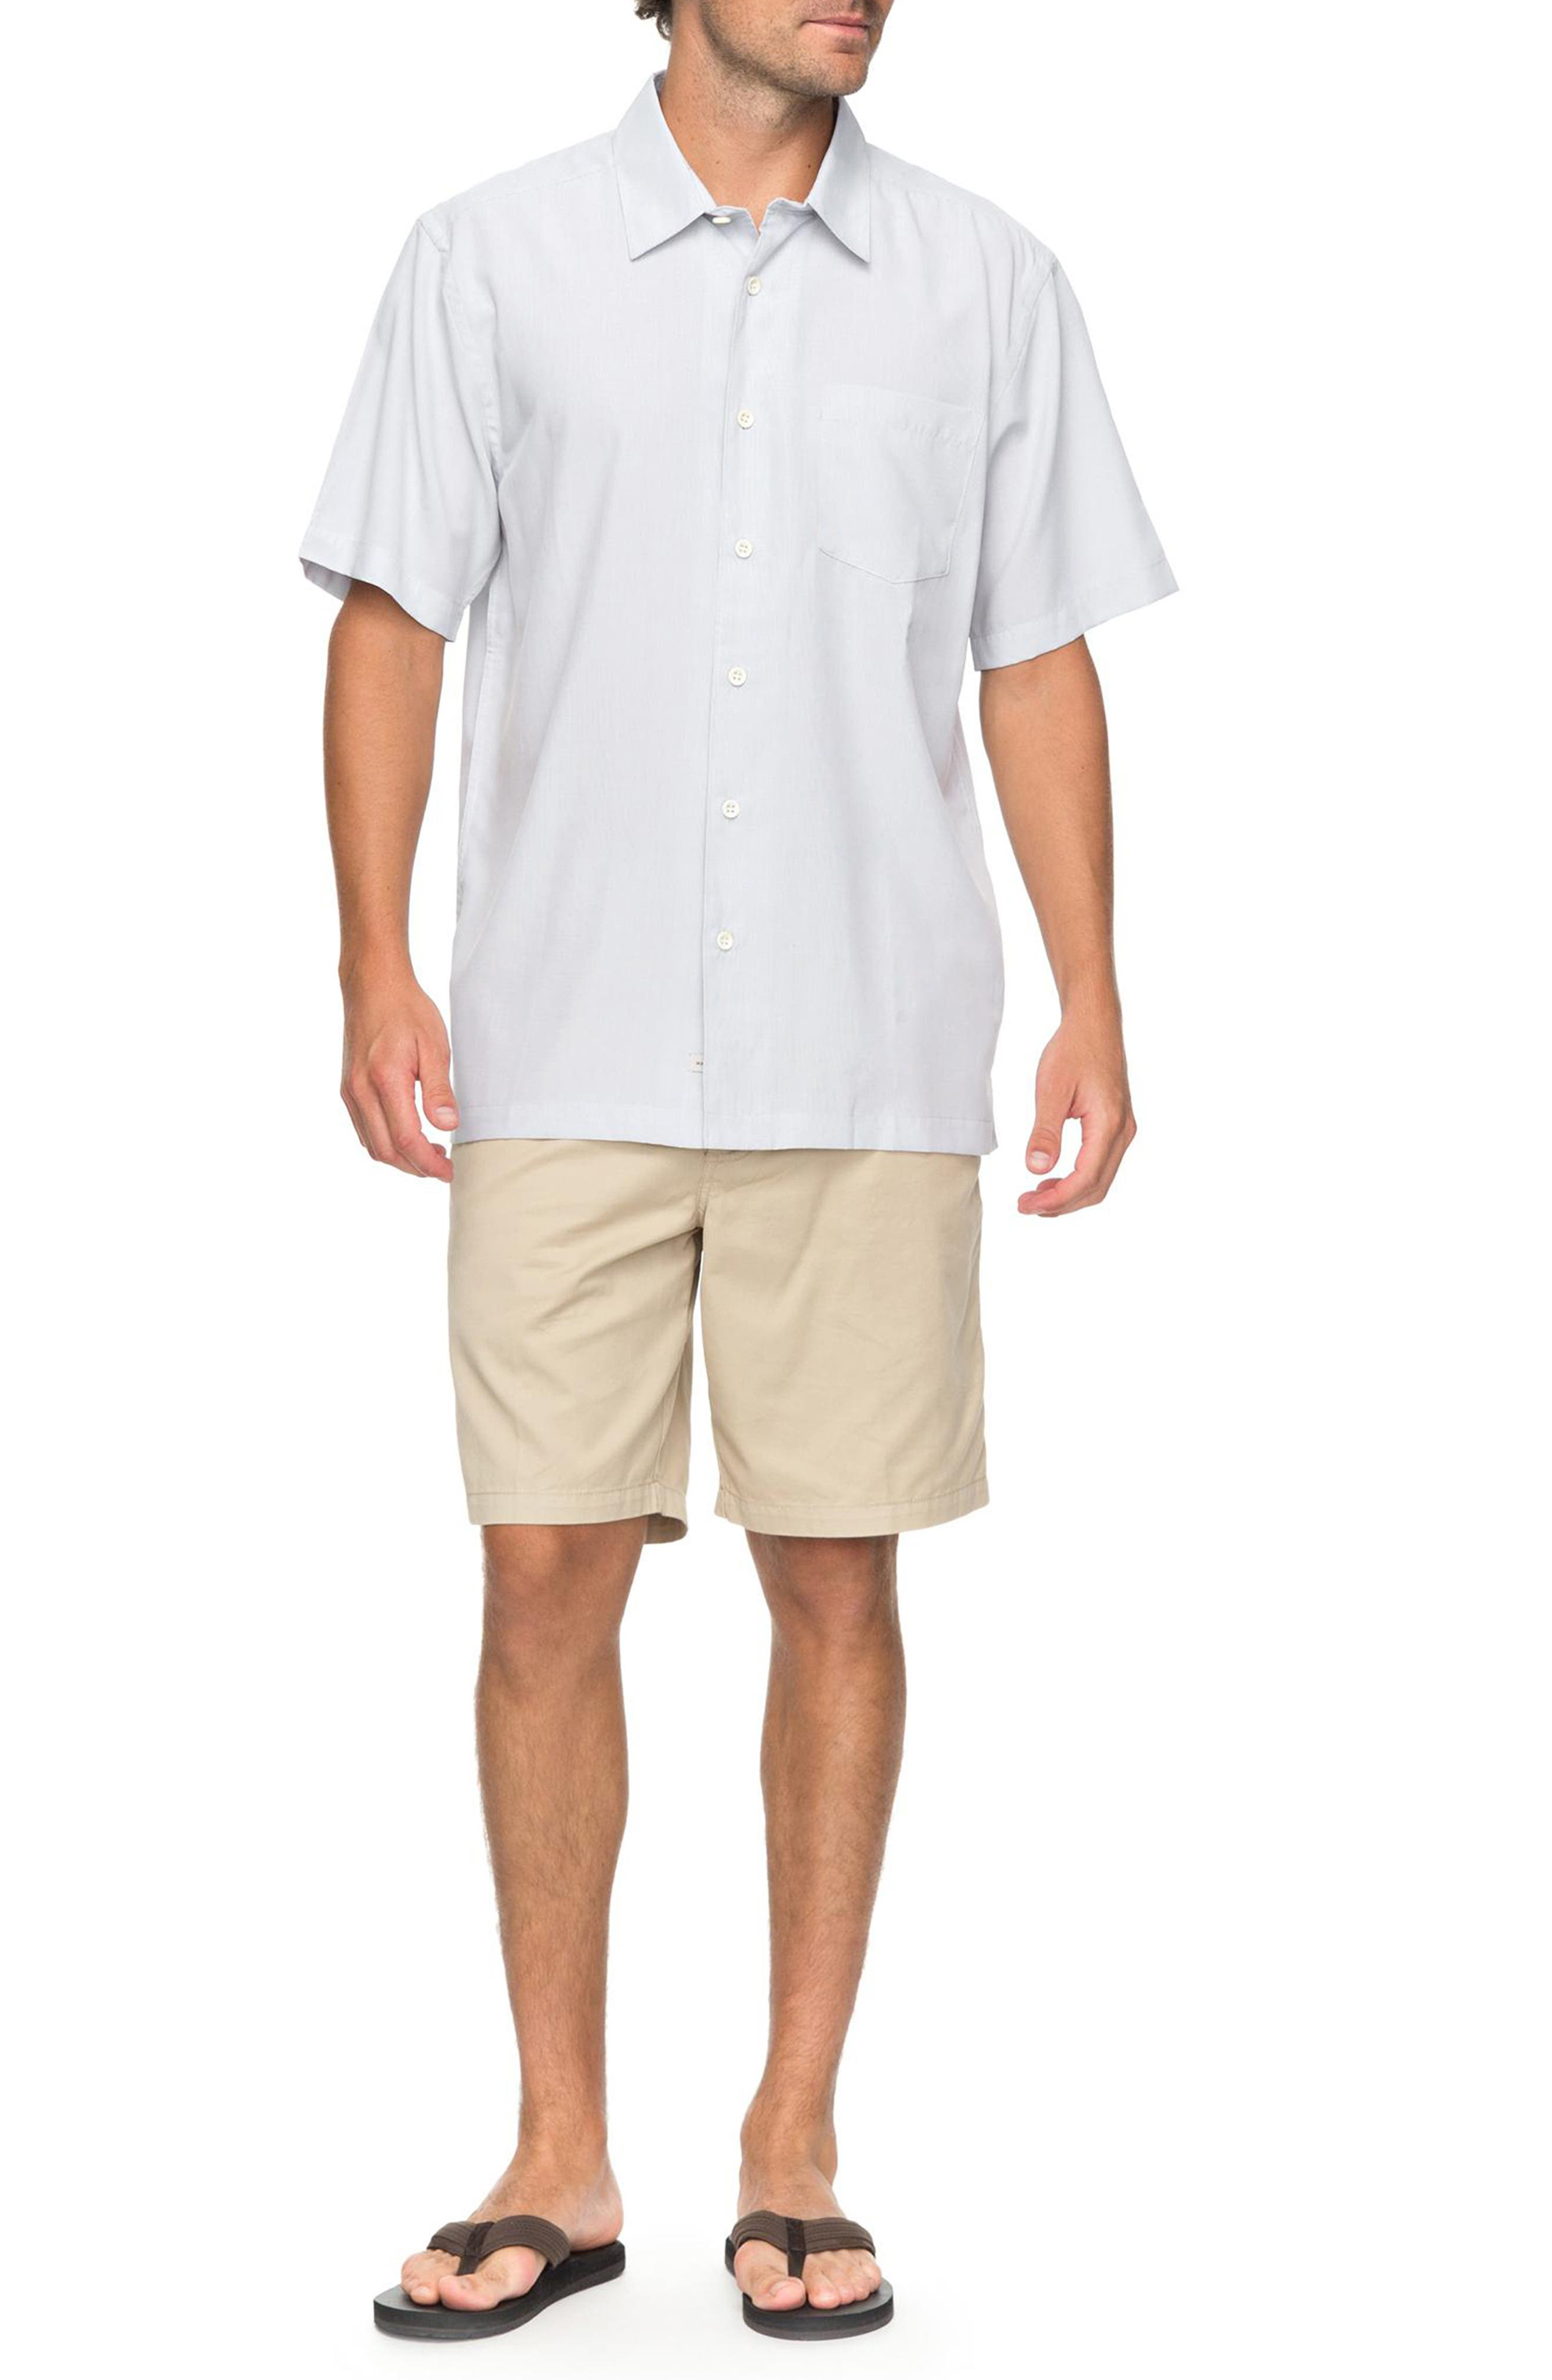 Cane Island Classic Fit Camp Shirt,                             Alternate thumbnail 7, color,                             101